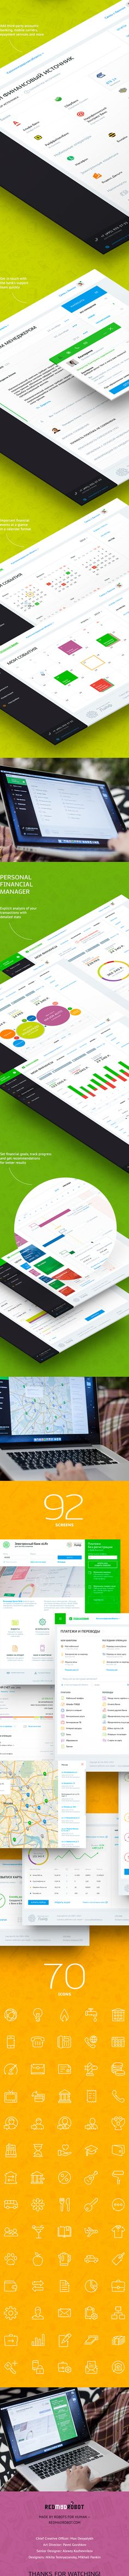 eLife online banking on Behance